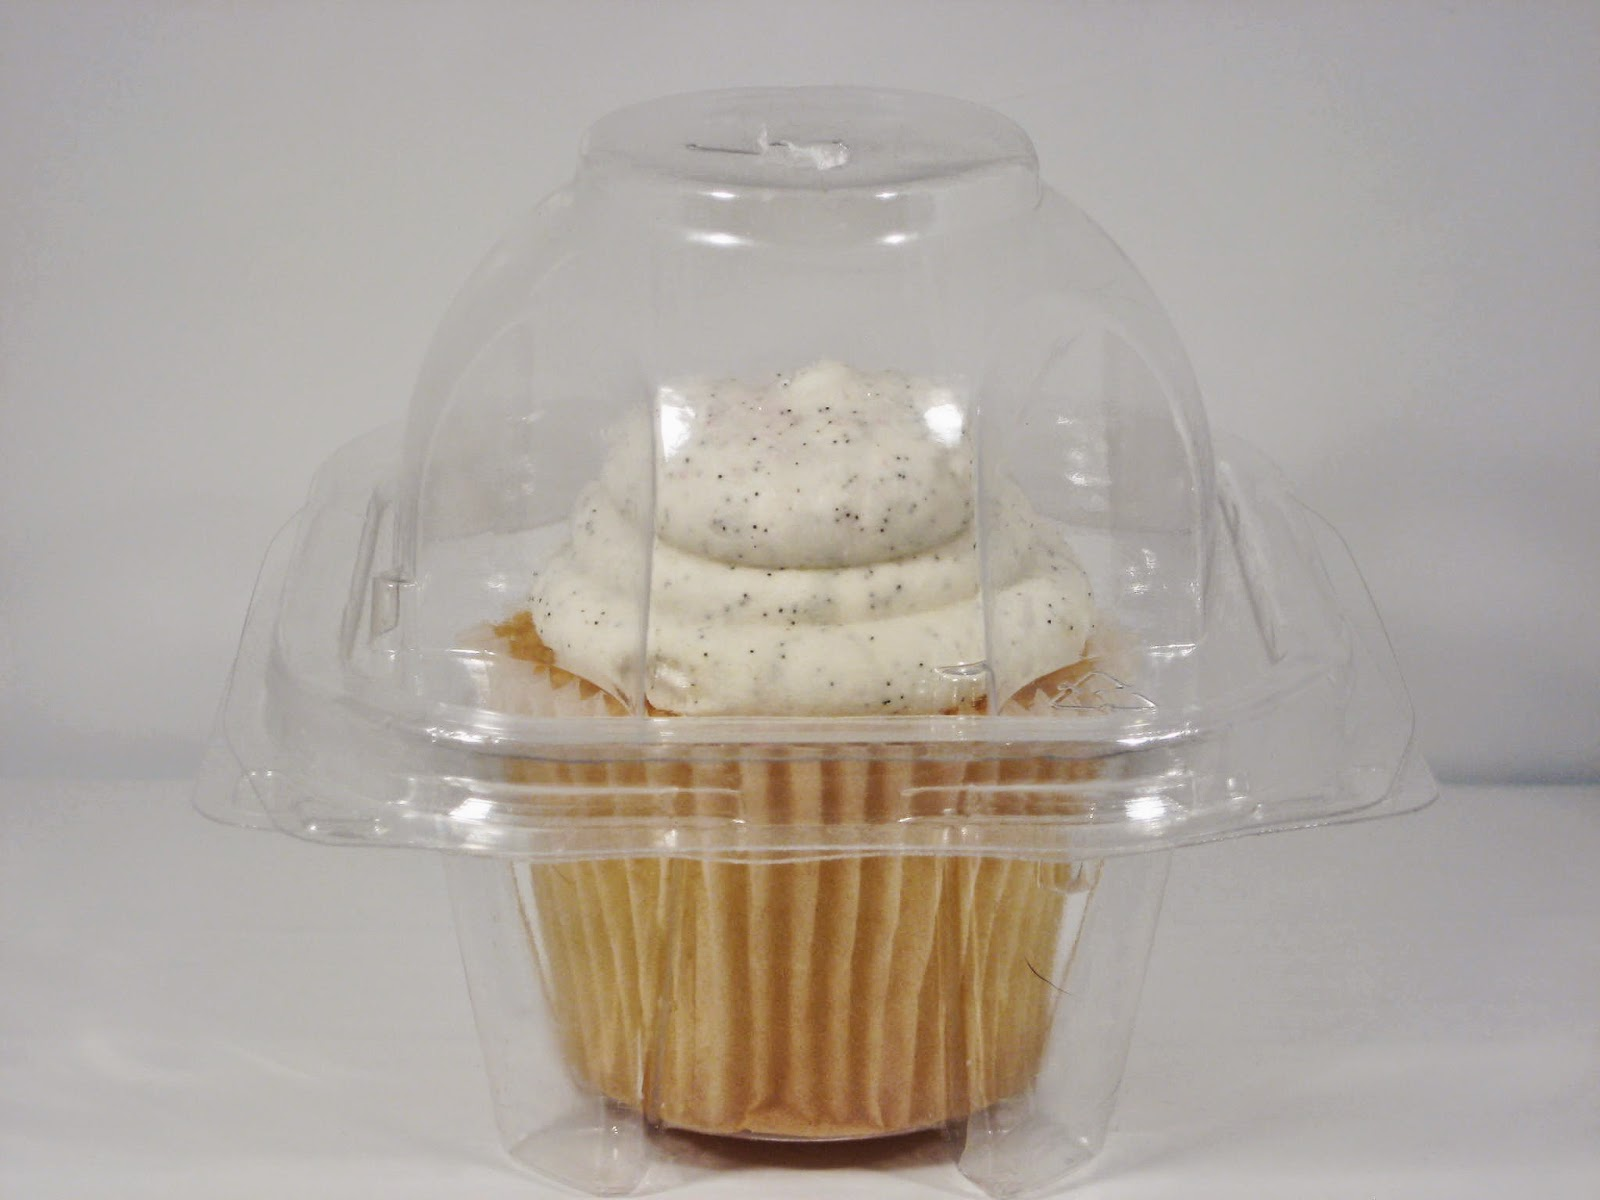 I Bought This Cupcake At Target Bakery It Was Sold In The Plastic Container